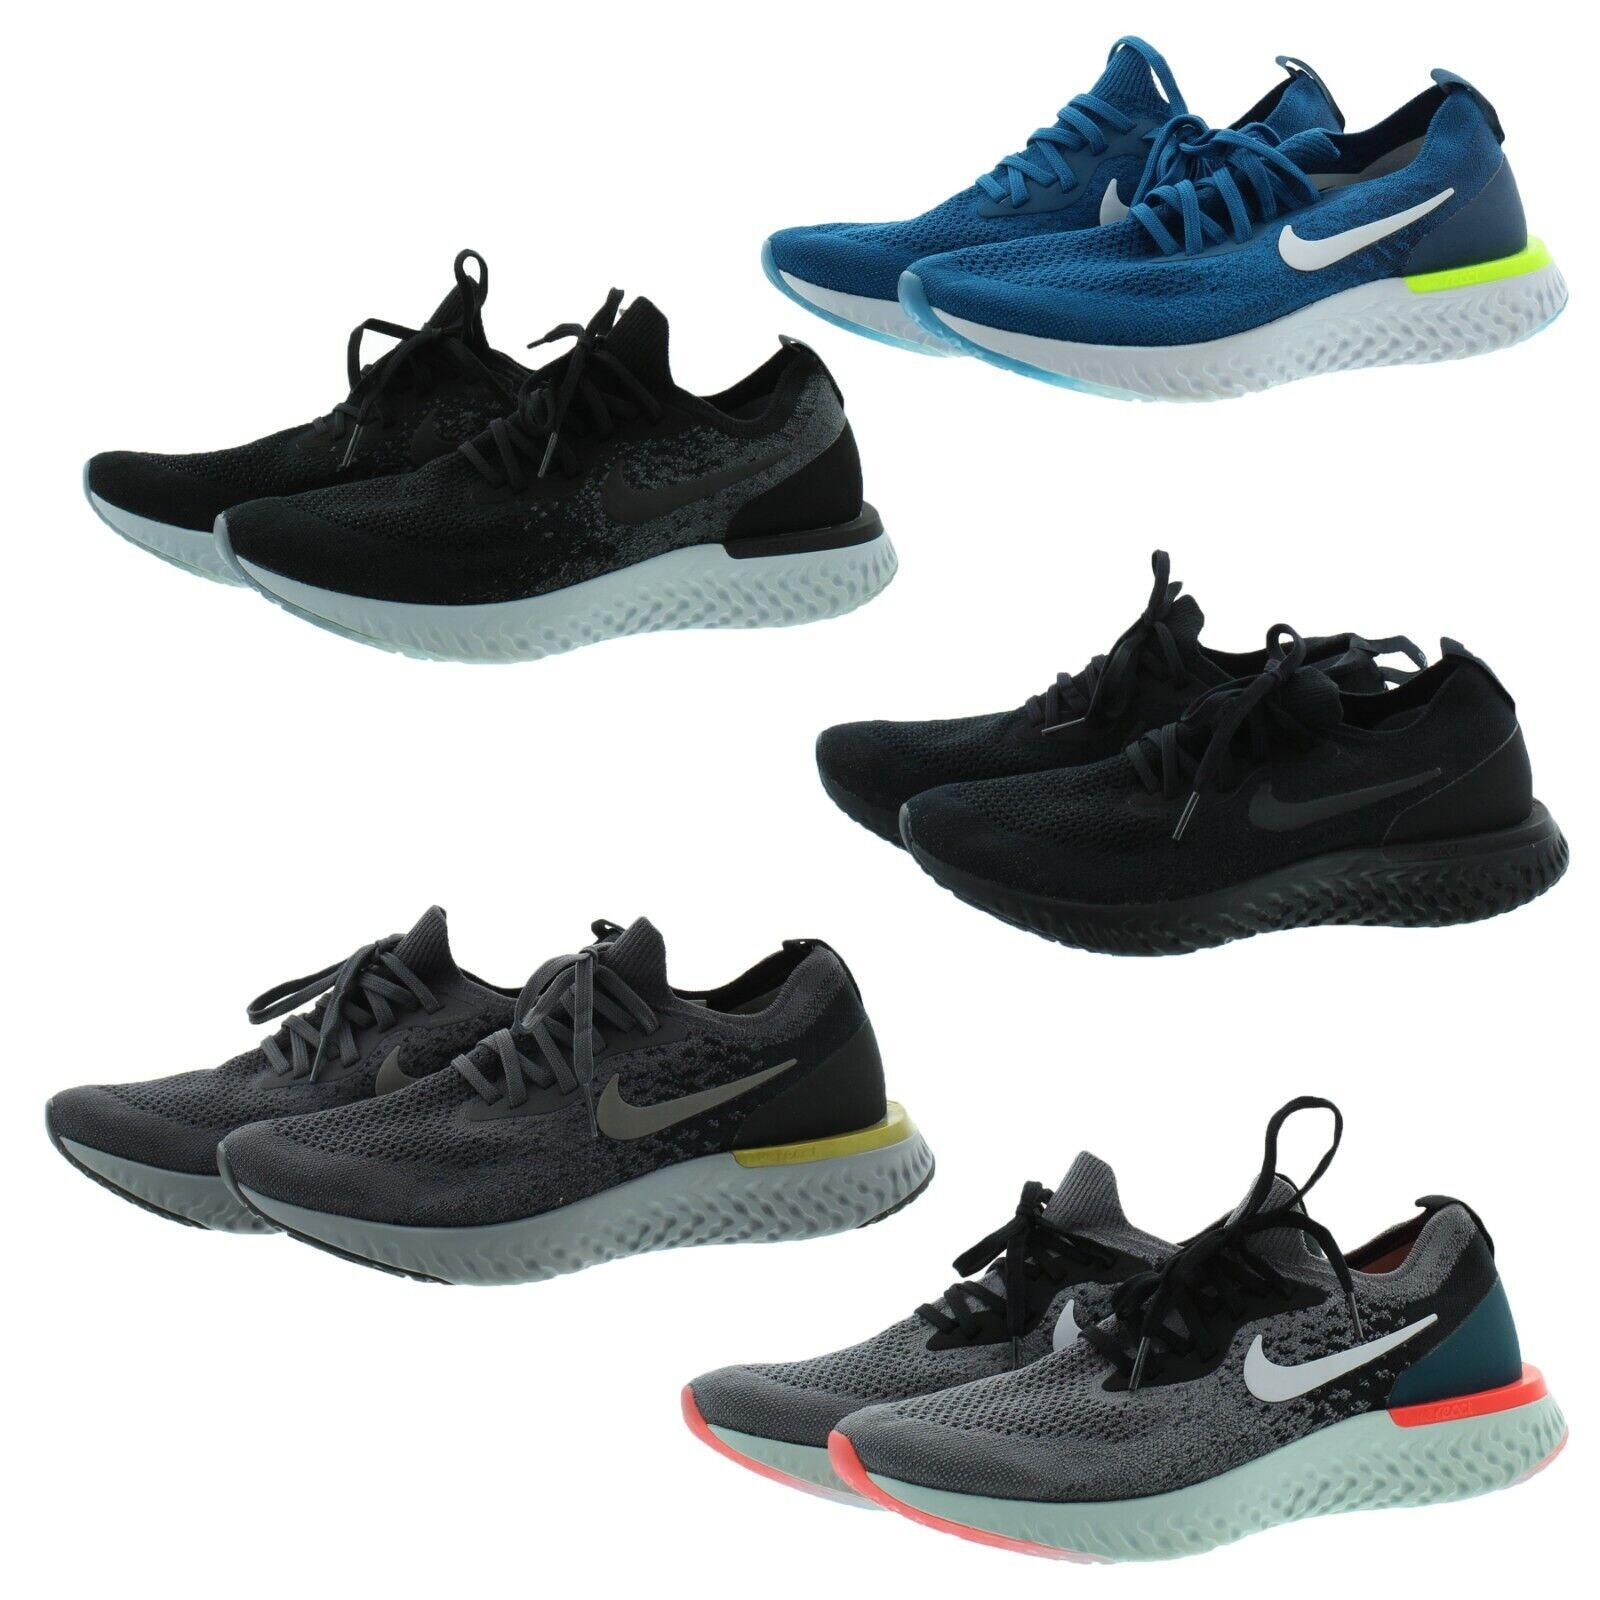 buy popular 9ec9c dabe3 Nike AQ0067 Men's Epic React Flyknit Athletic Running Low Top Shoes Sneakers